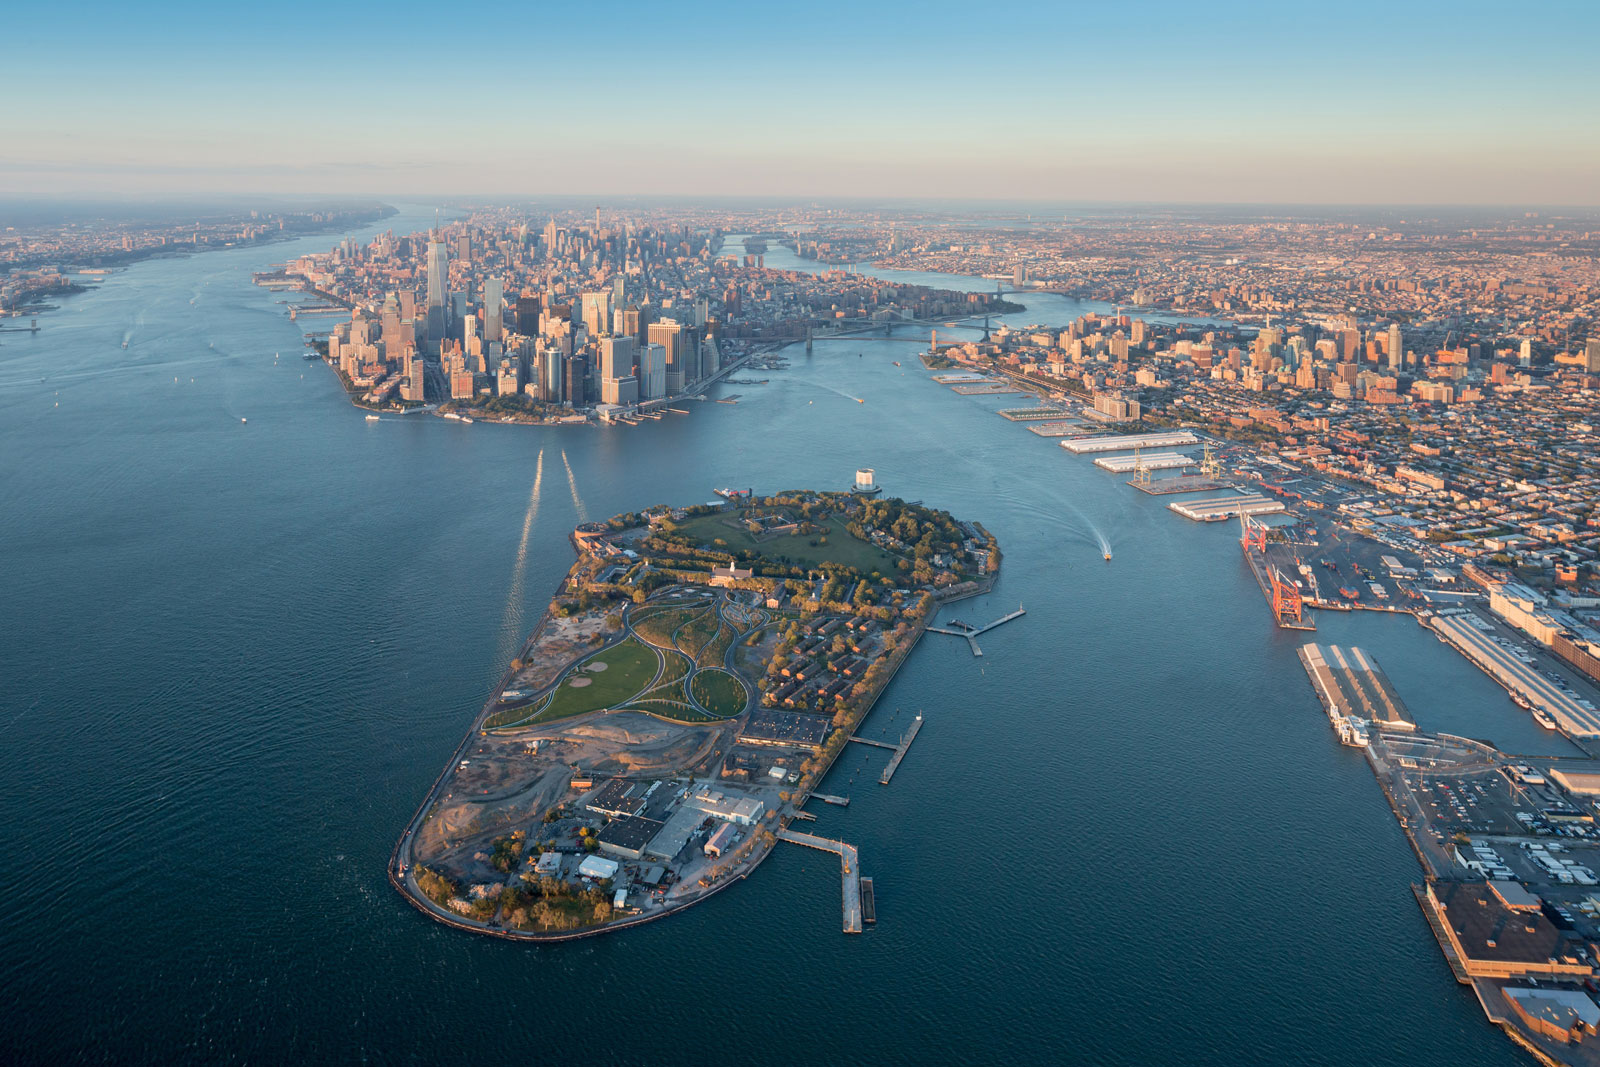 Aerial view of Governors Island with the Hills under construction at bottom left, 2015